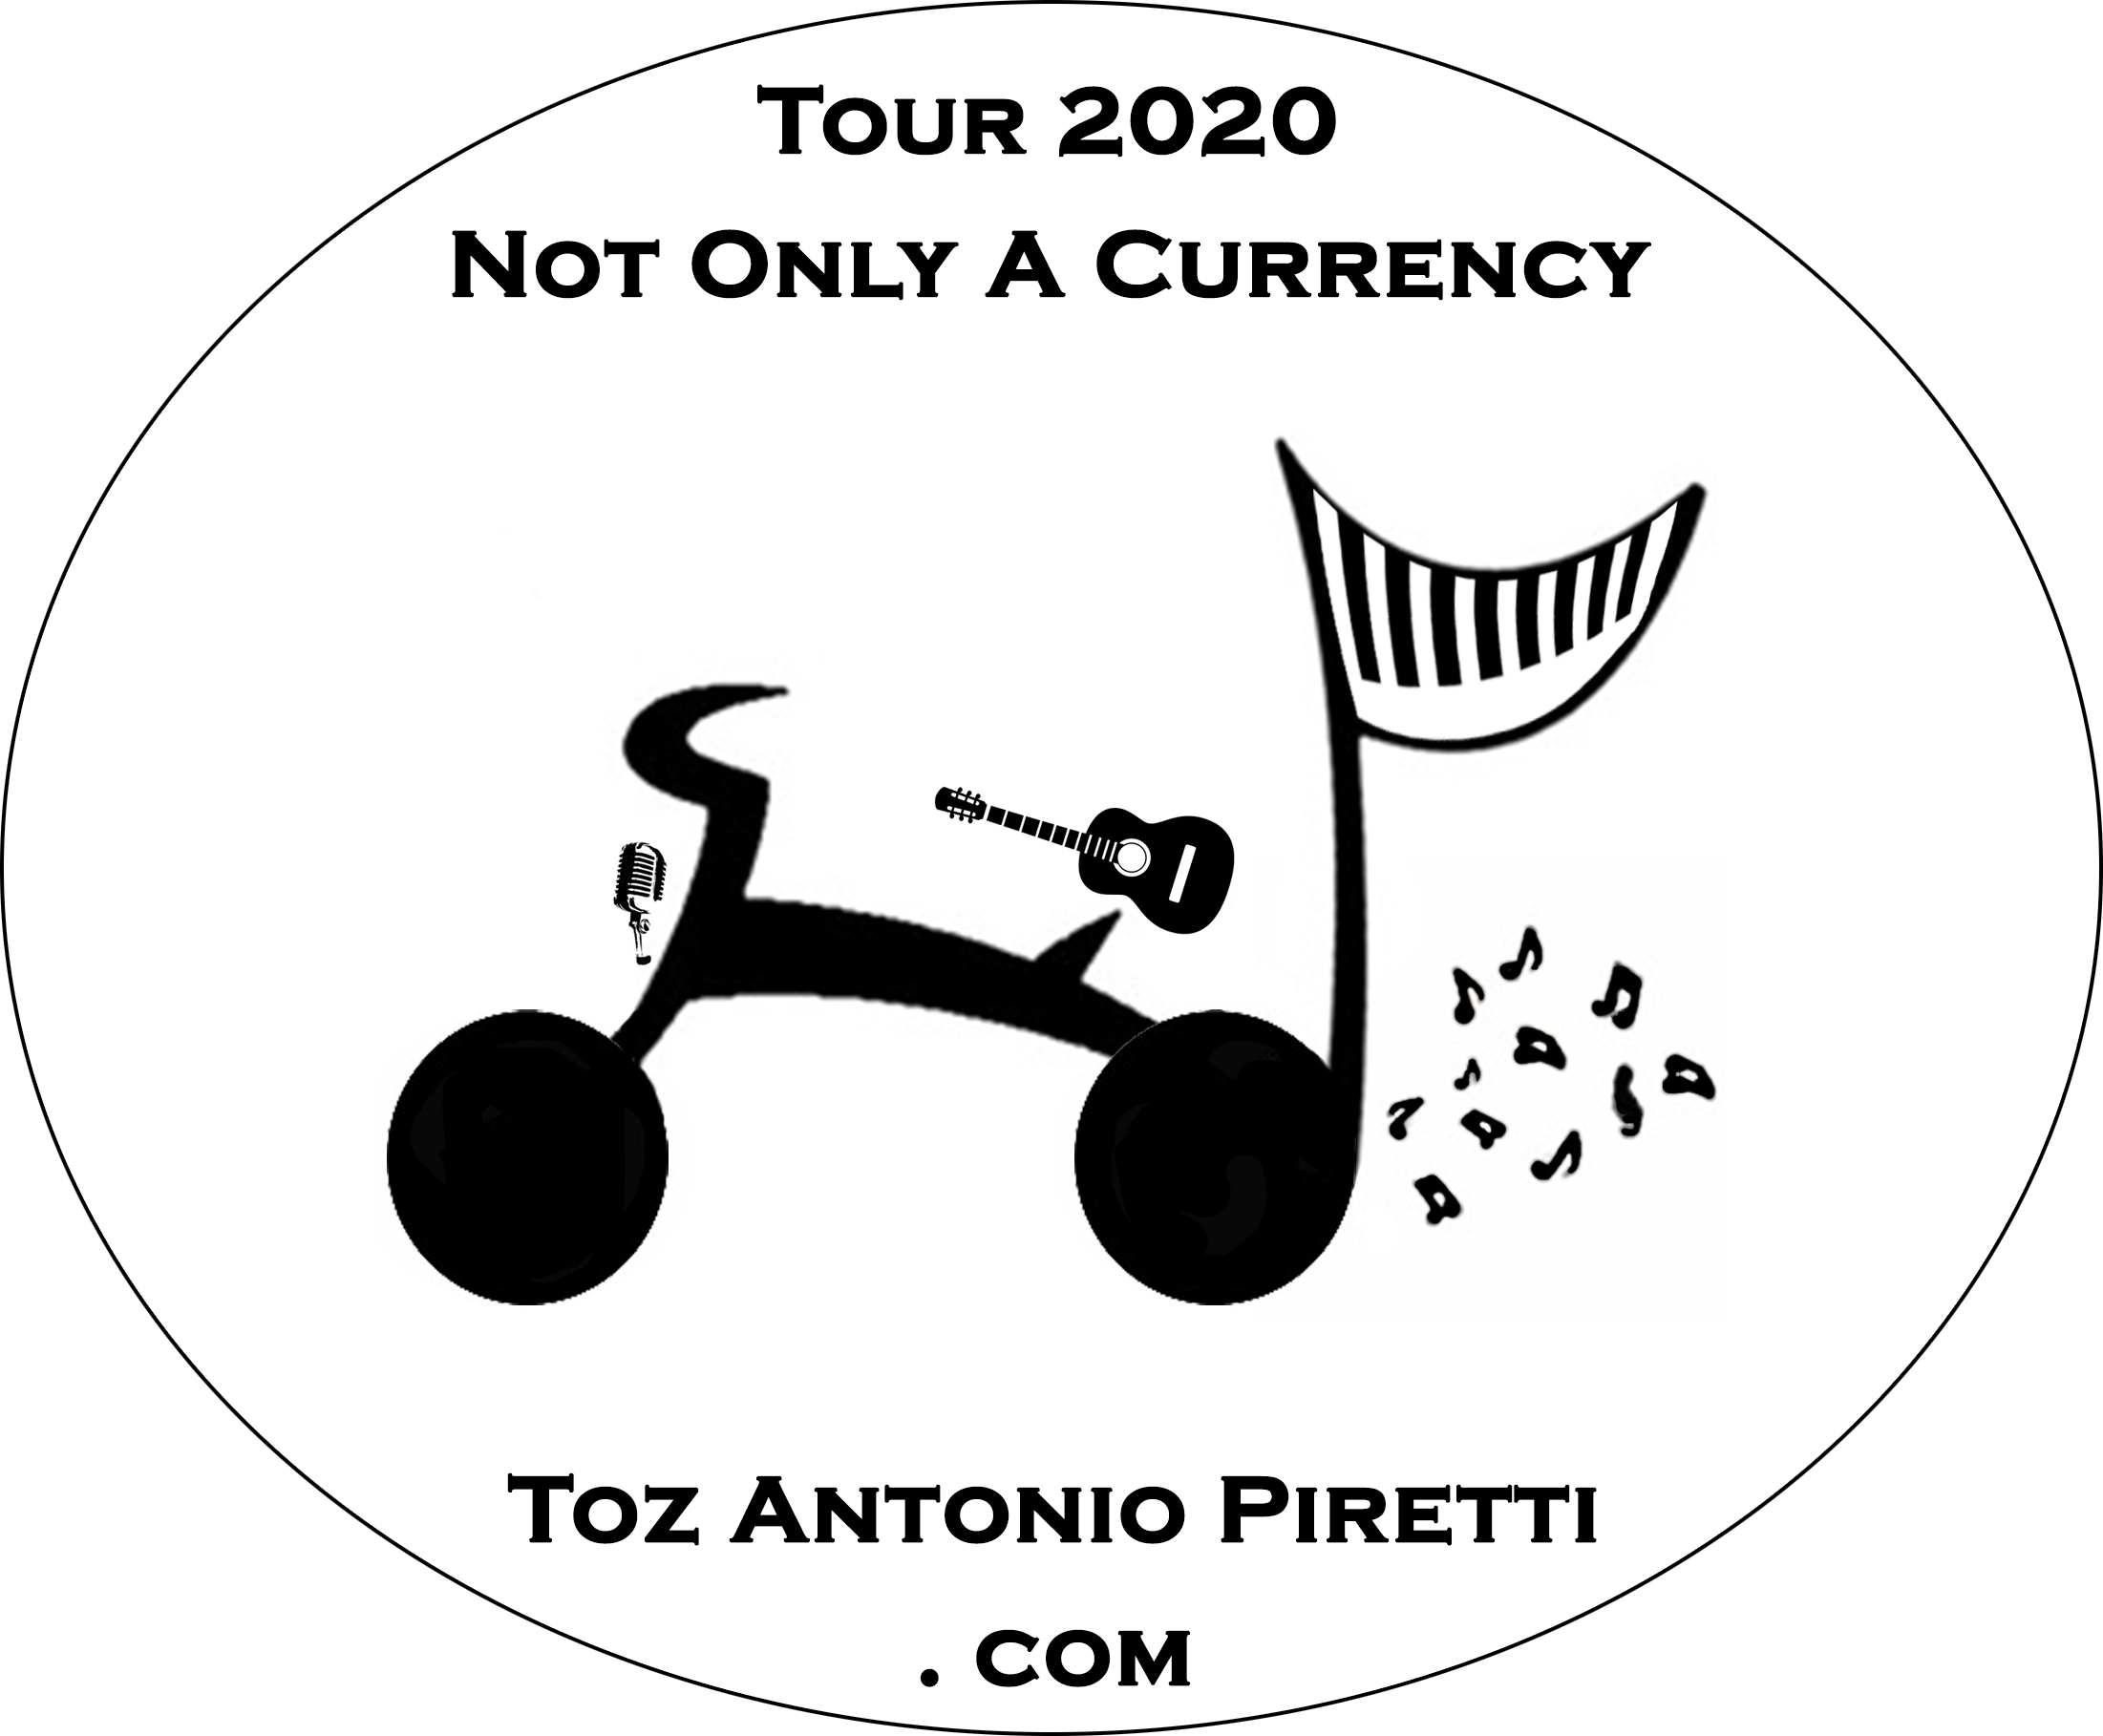 Toz Antonio Piretti - a Bike & a Guitar